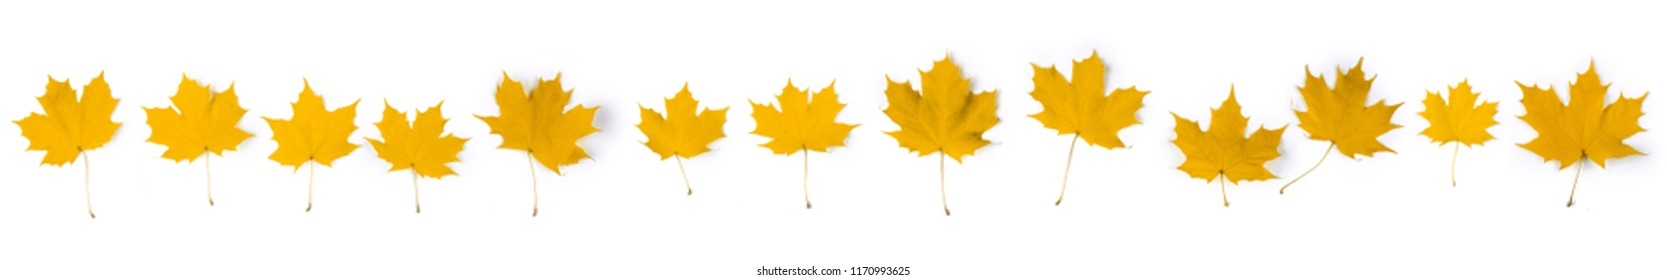 Set of yellow autumn maple leaves isolated over white background